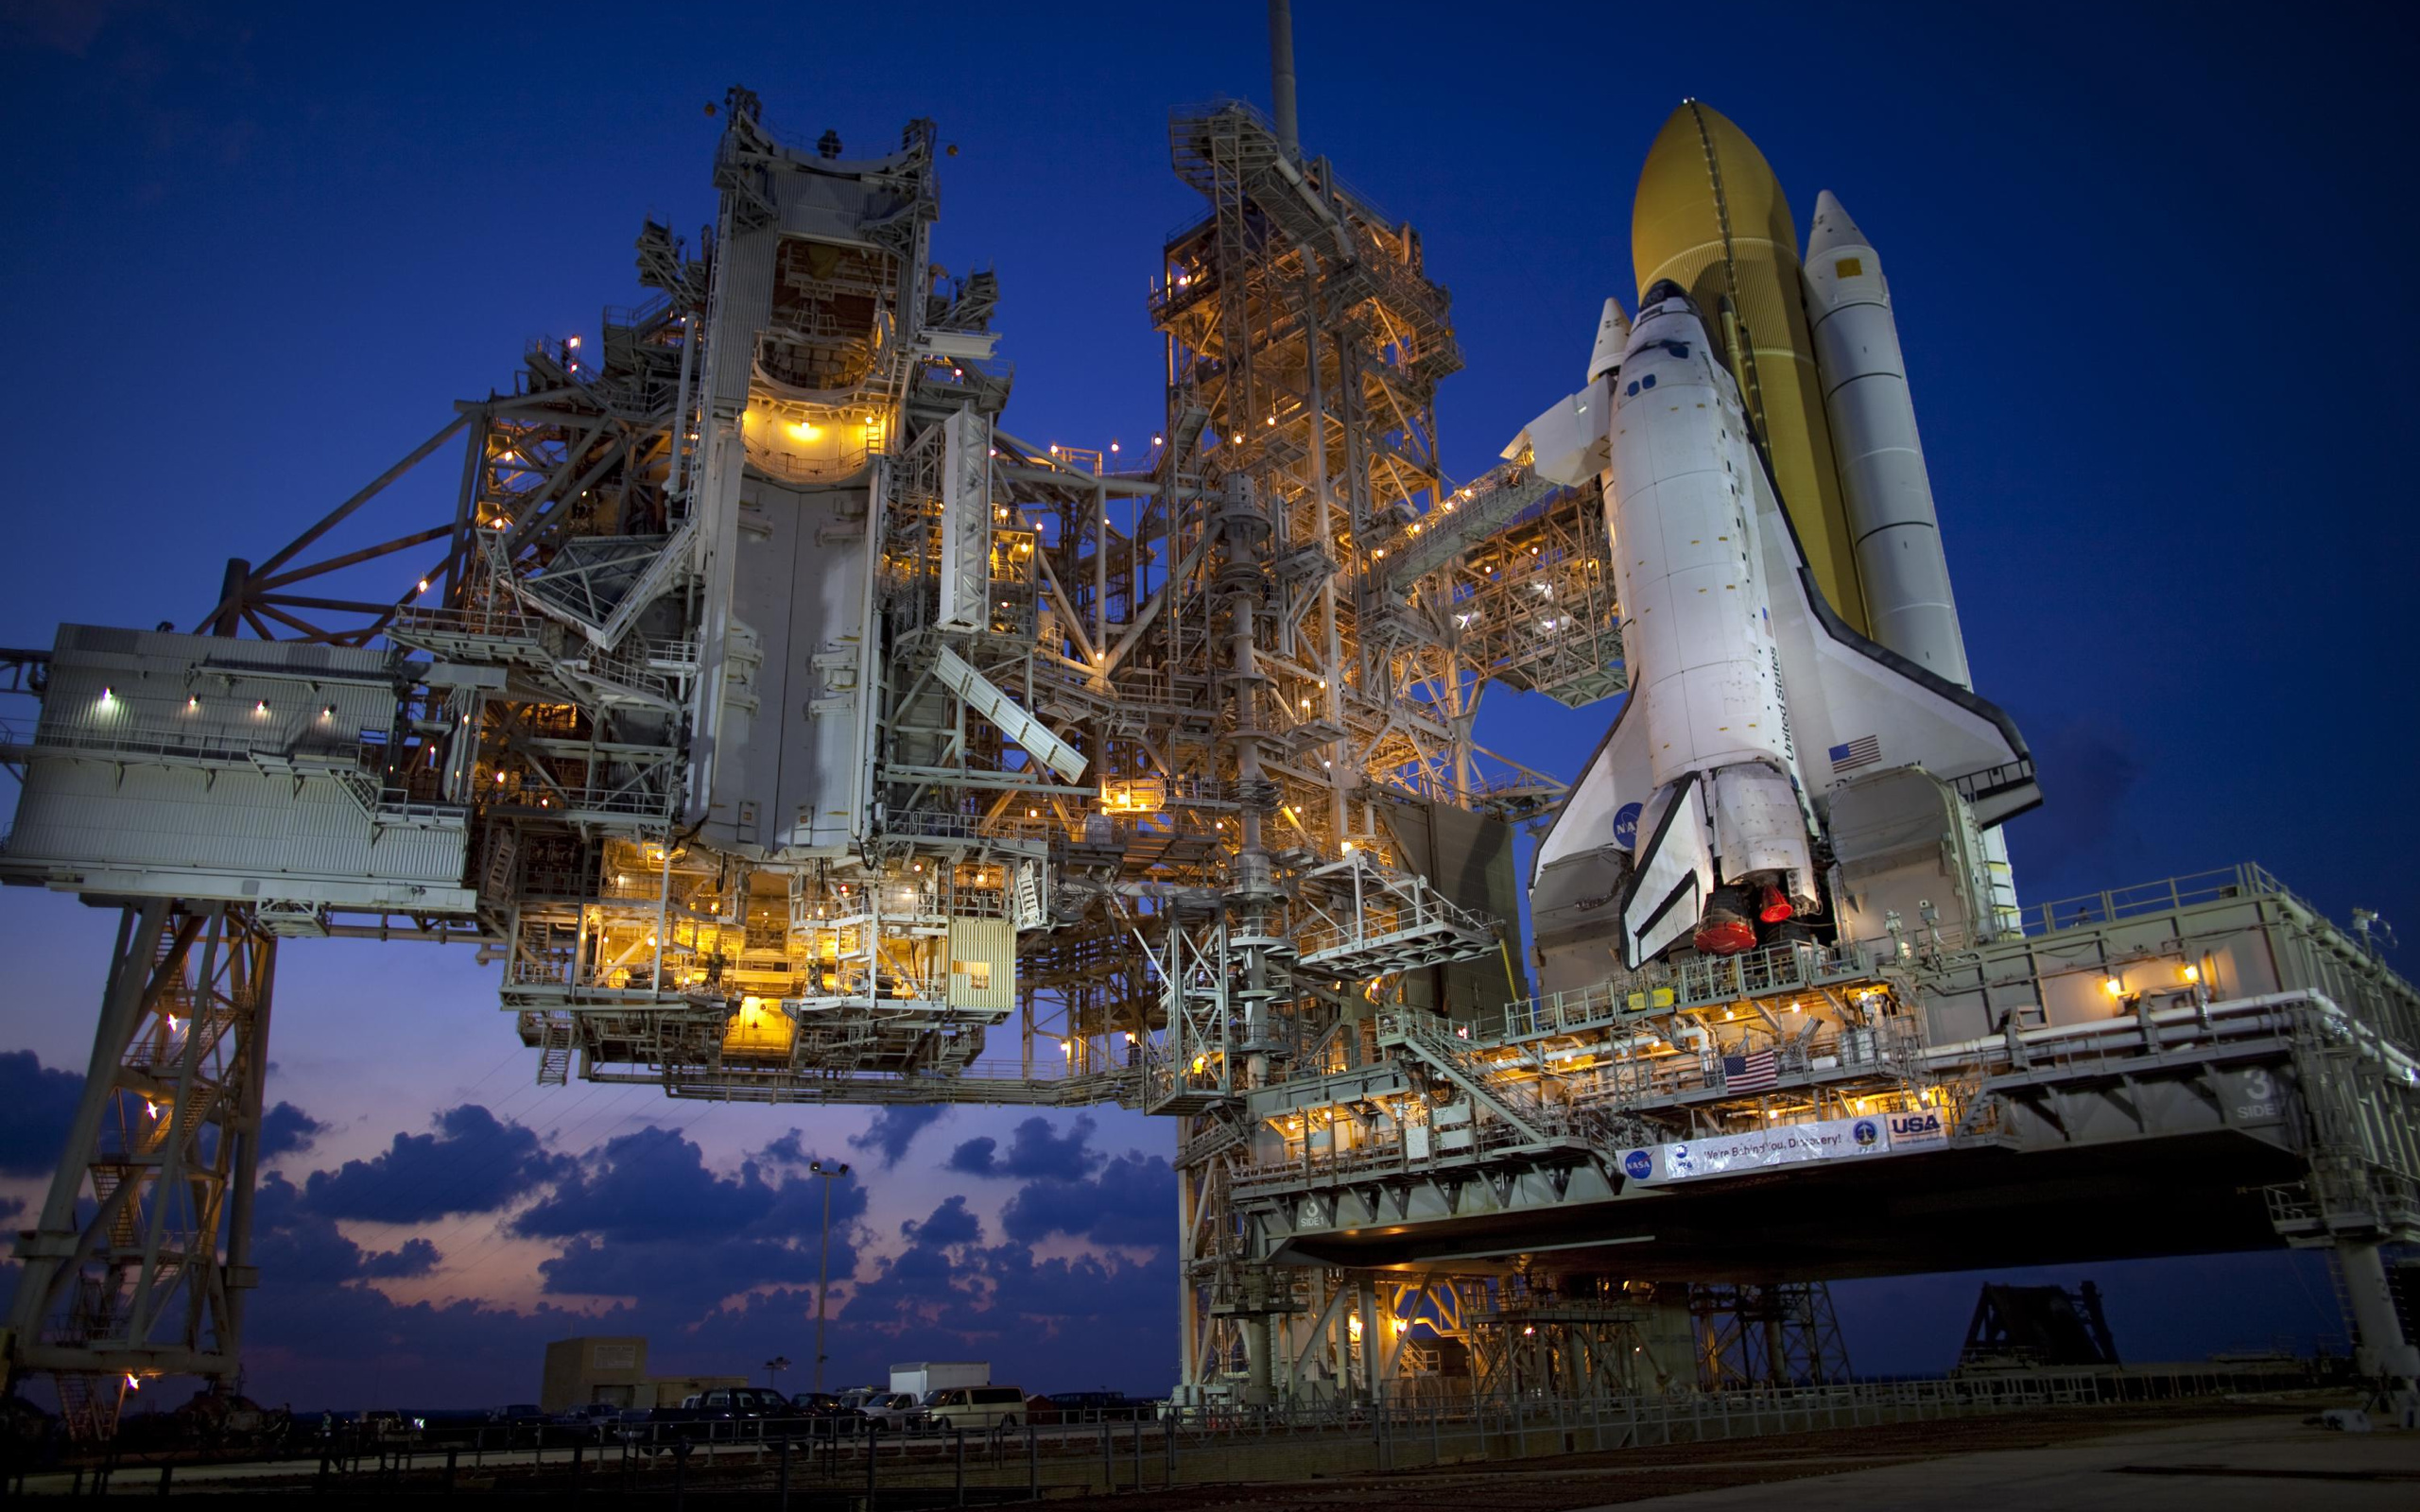 Space Shuttle Discovery HD Wallpaper Background Image 2560x1600